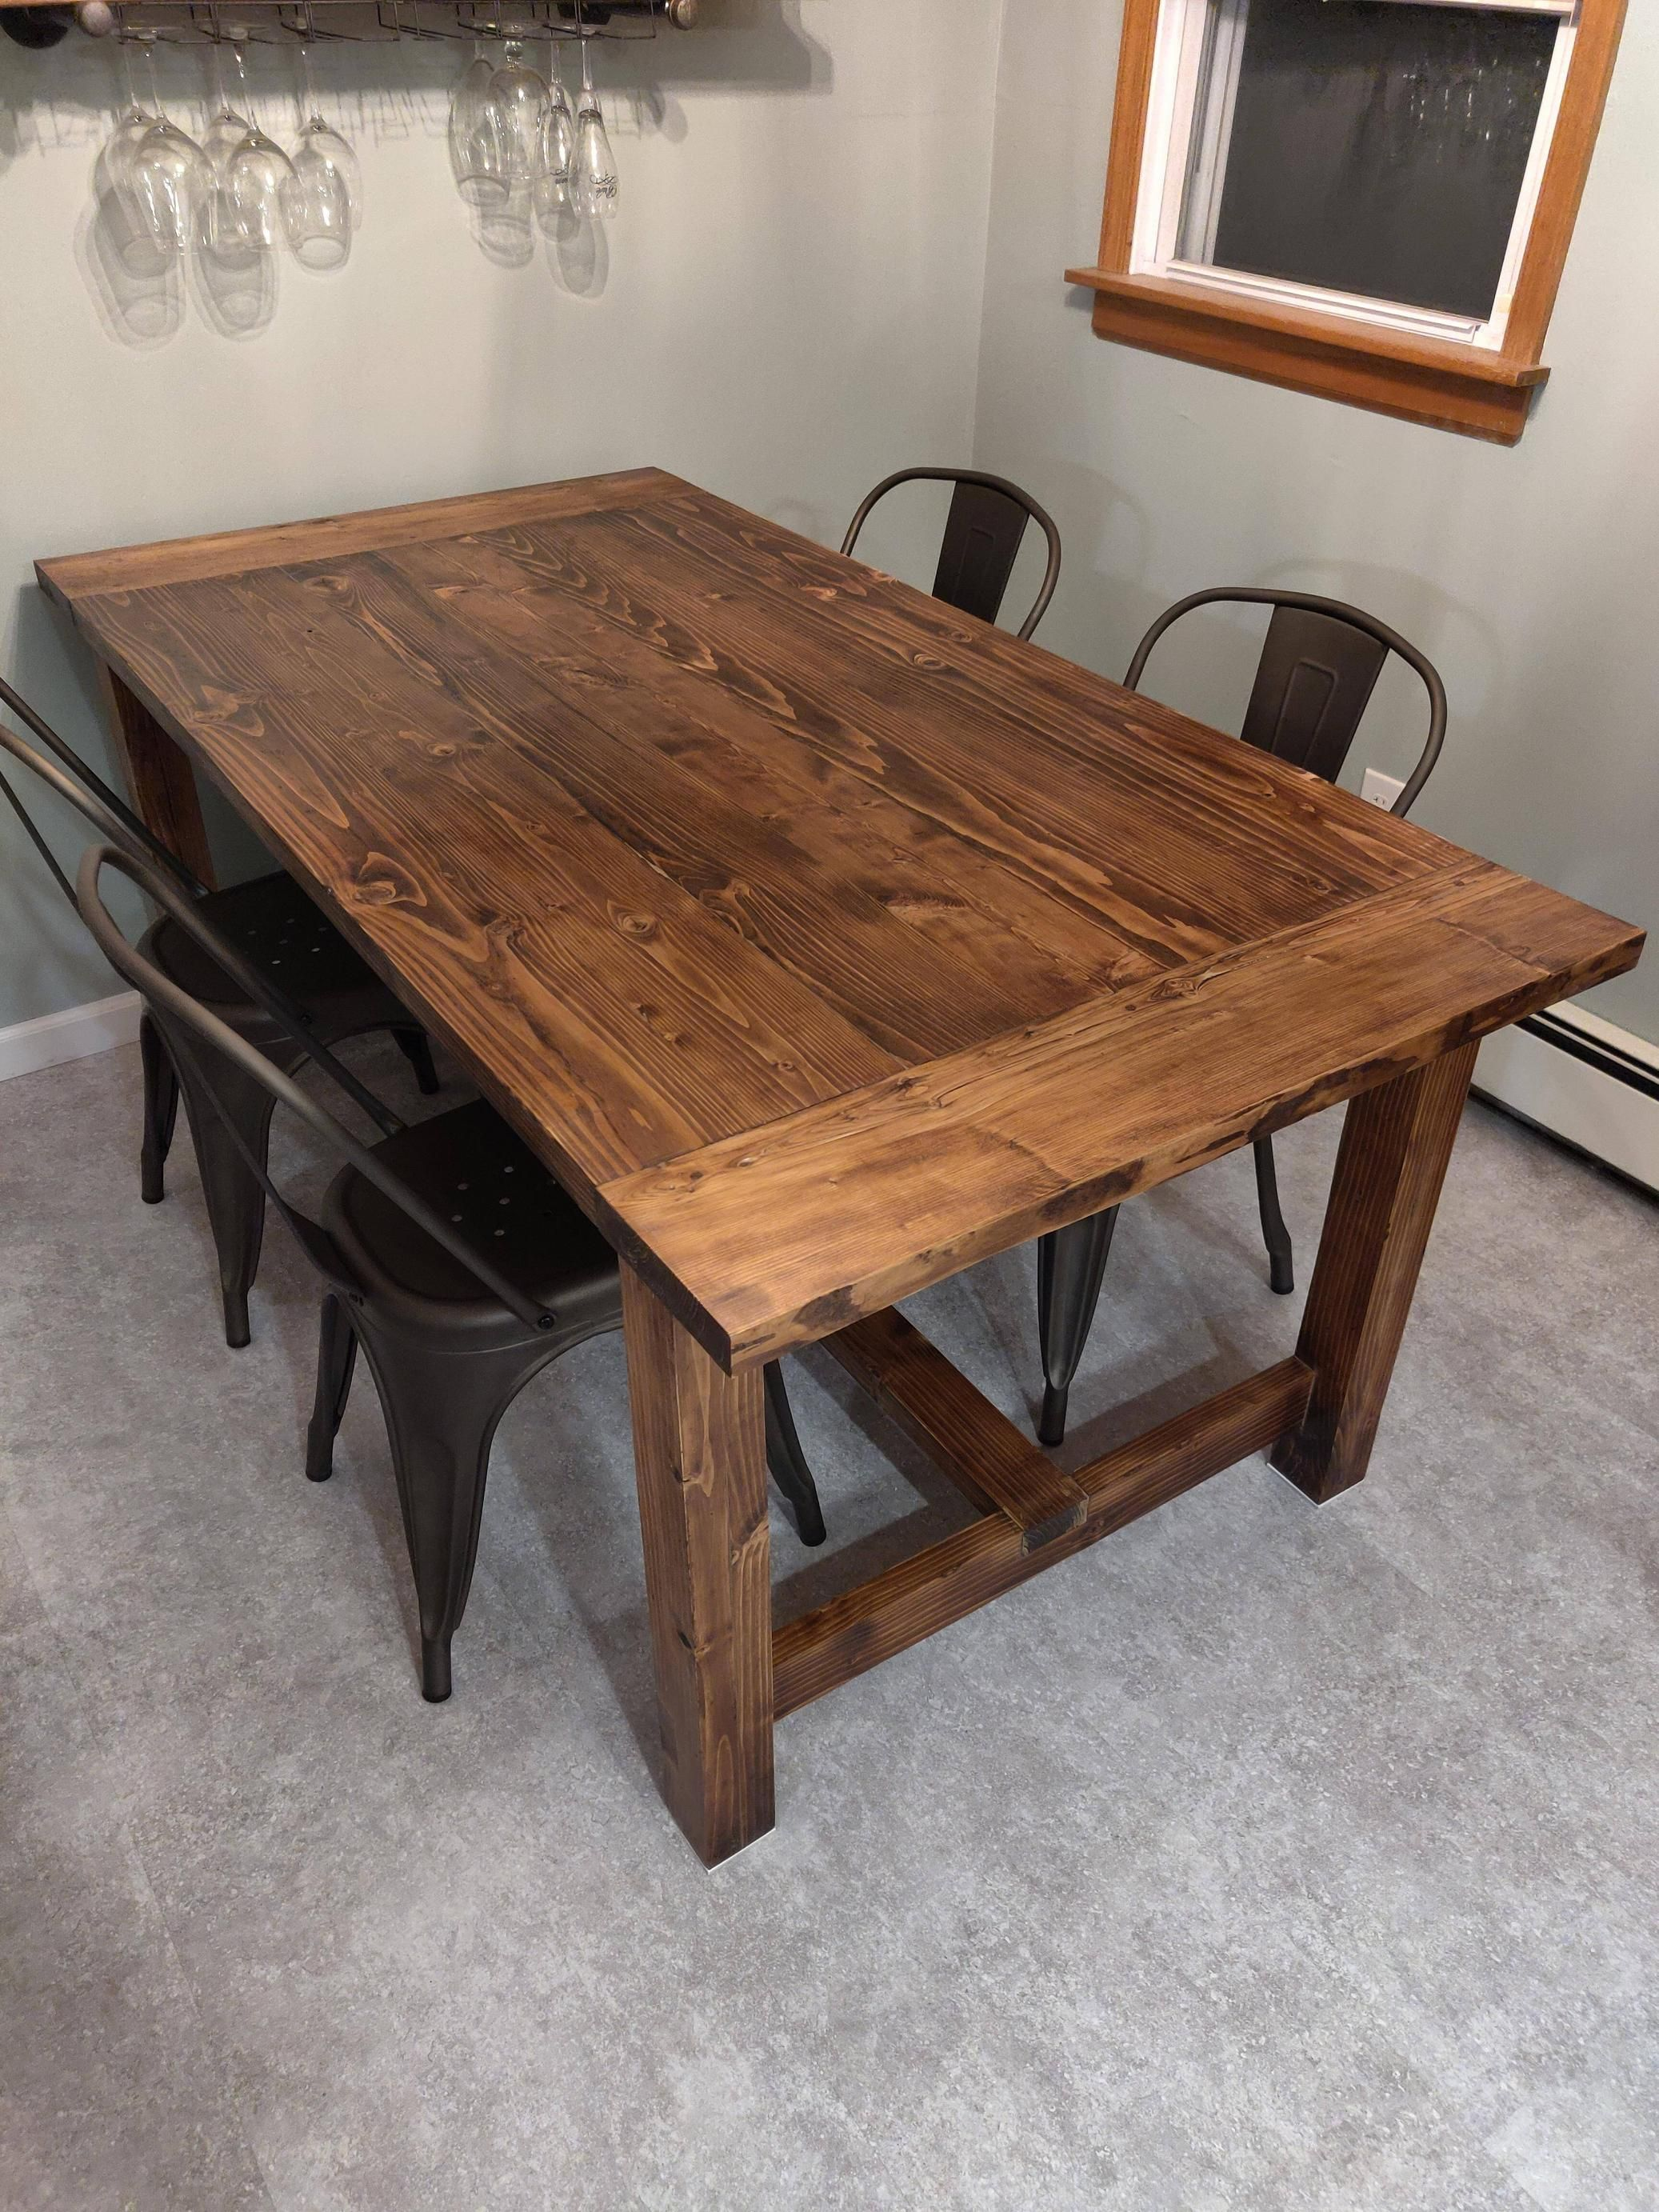 First Project Ever Of Course It Was An Anna White Farmhouse Table I Learned A Heck Of A Lot And I Anna White Farmhouse Table White Farmhouse Table Anna White